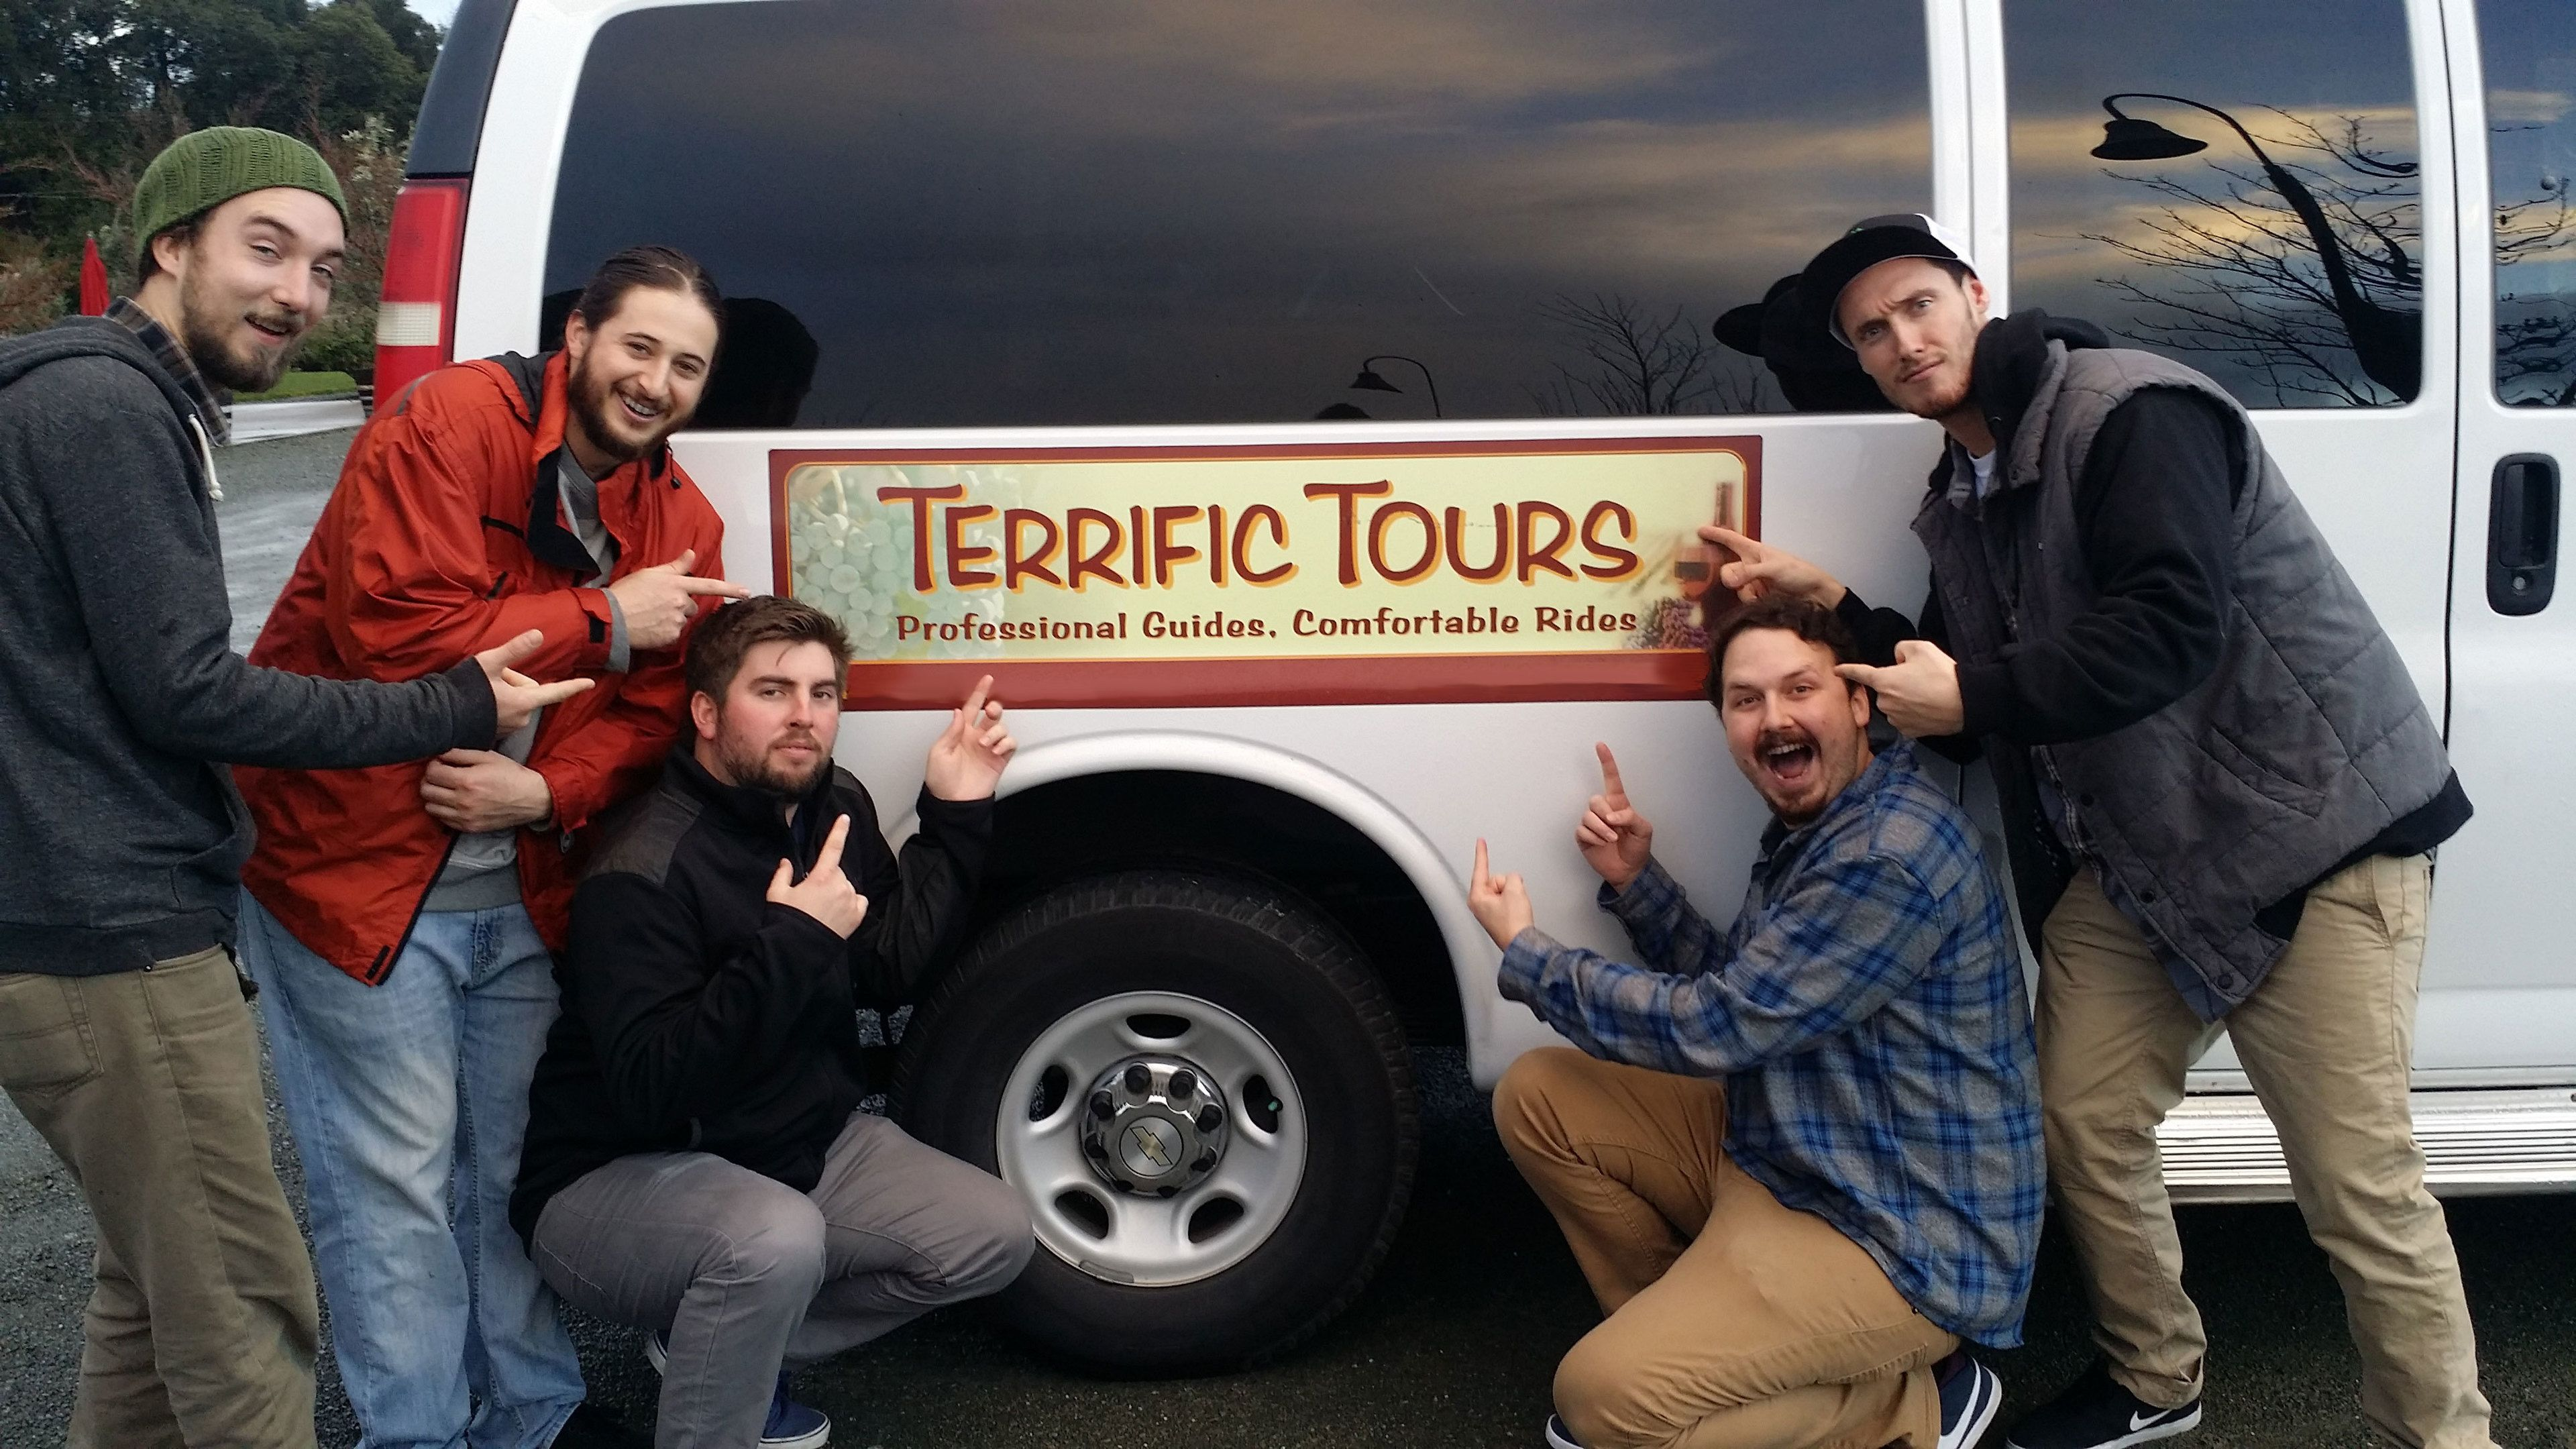 Group with tour van in Sonoma